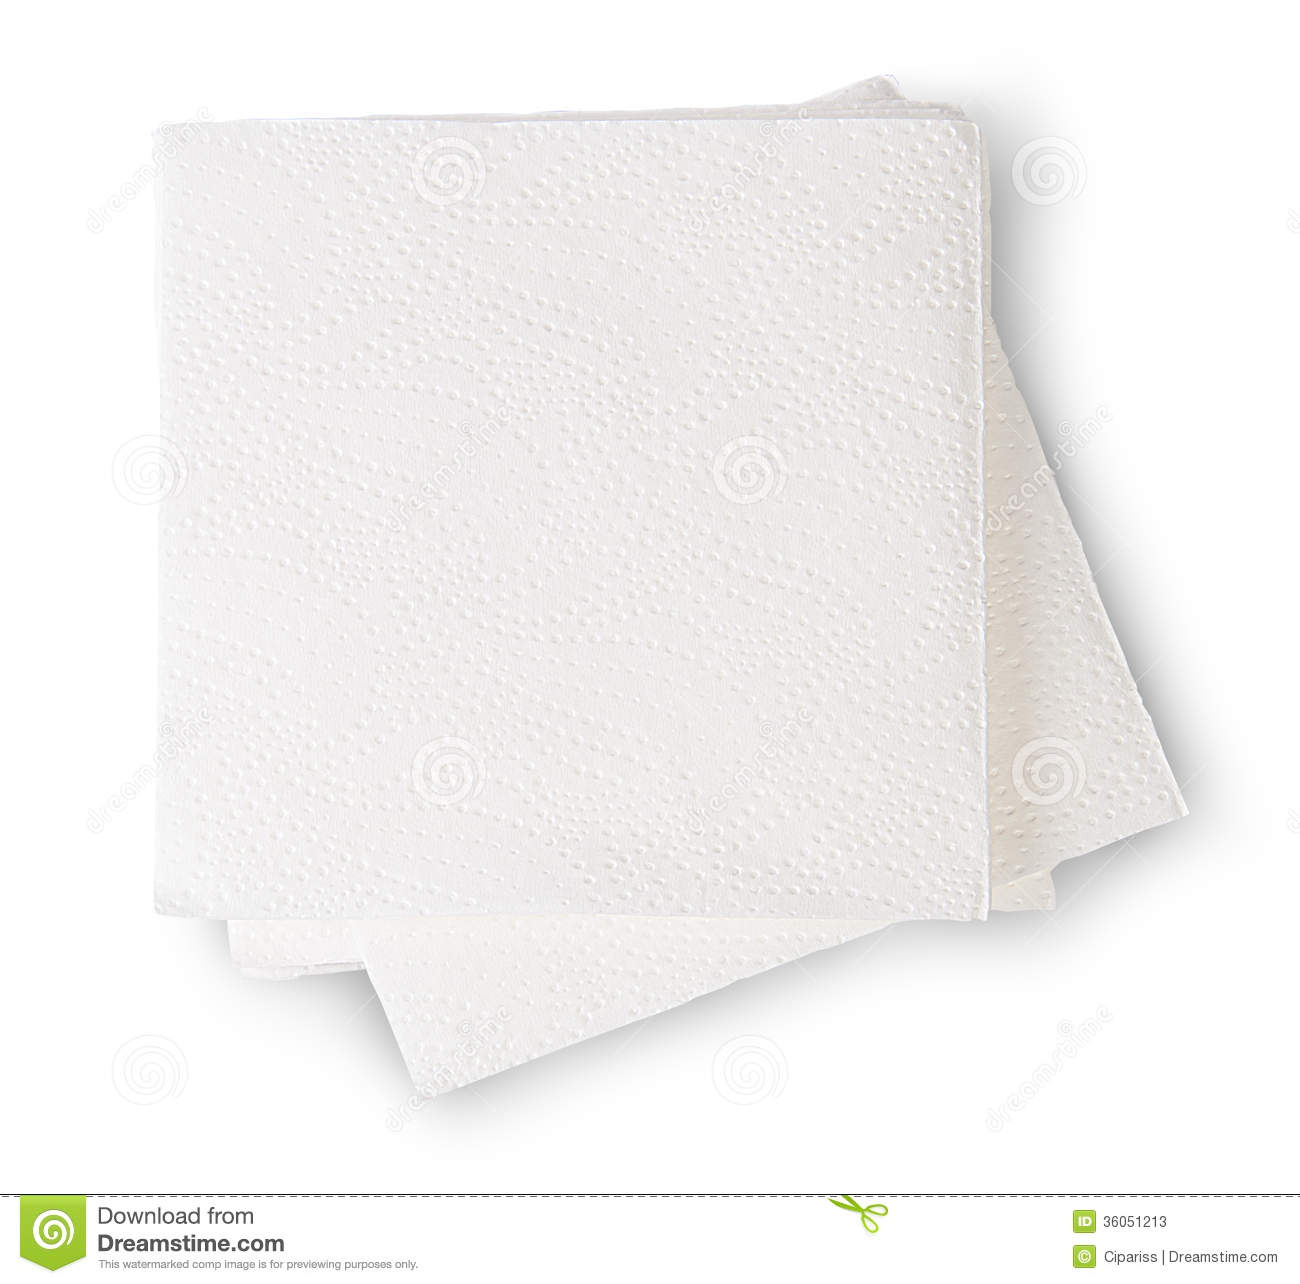 Napkin clipart. Packaged paper